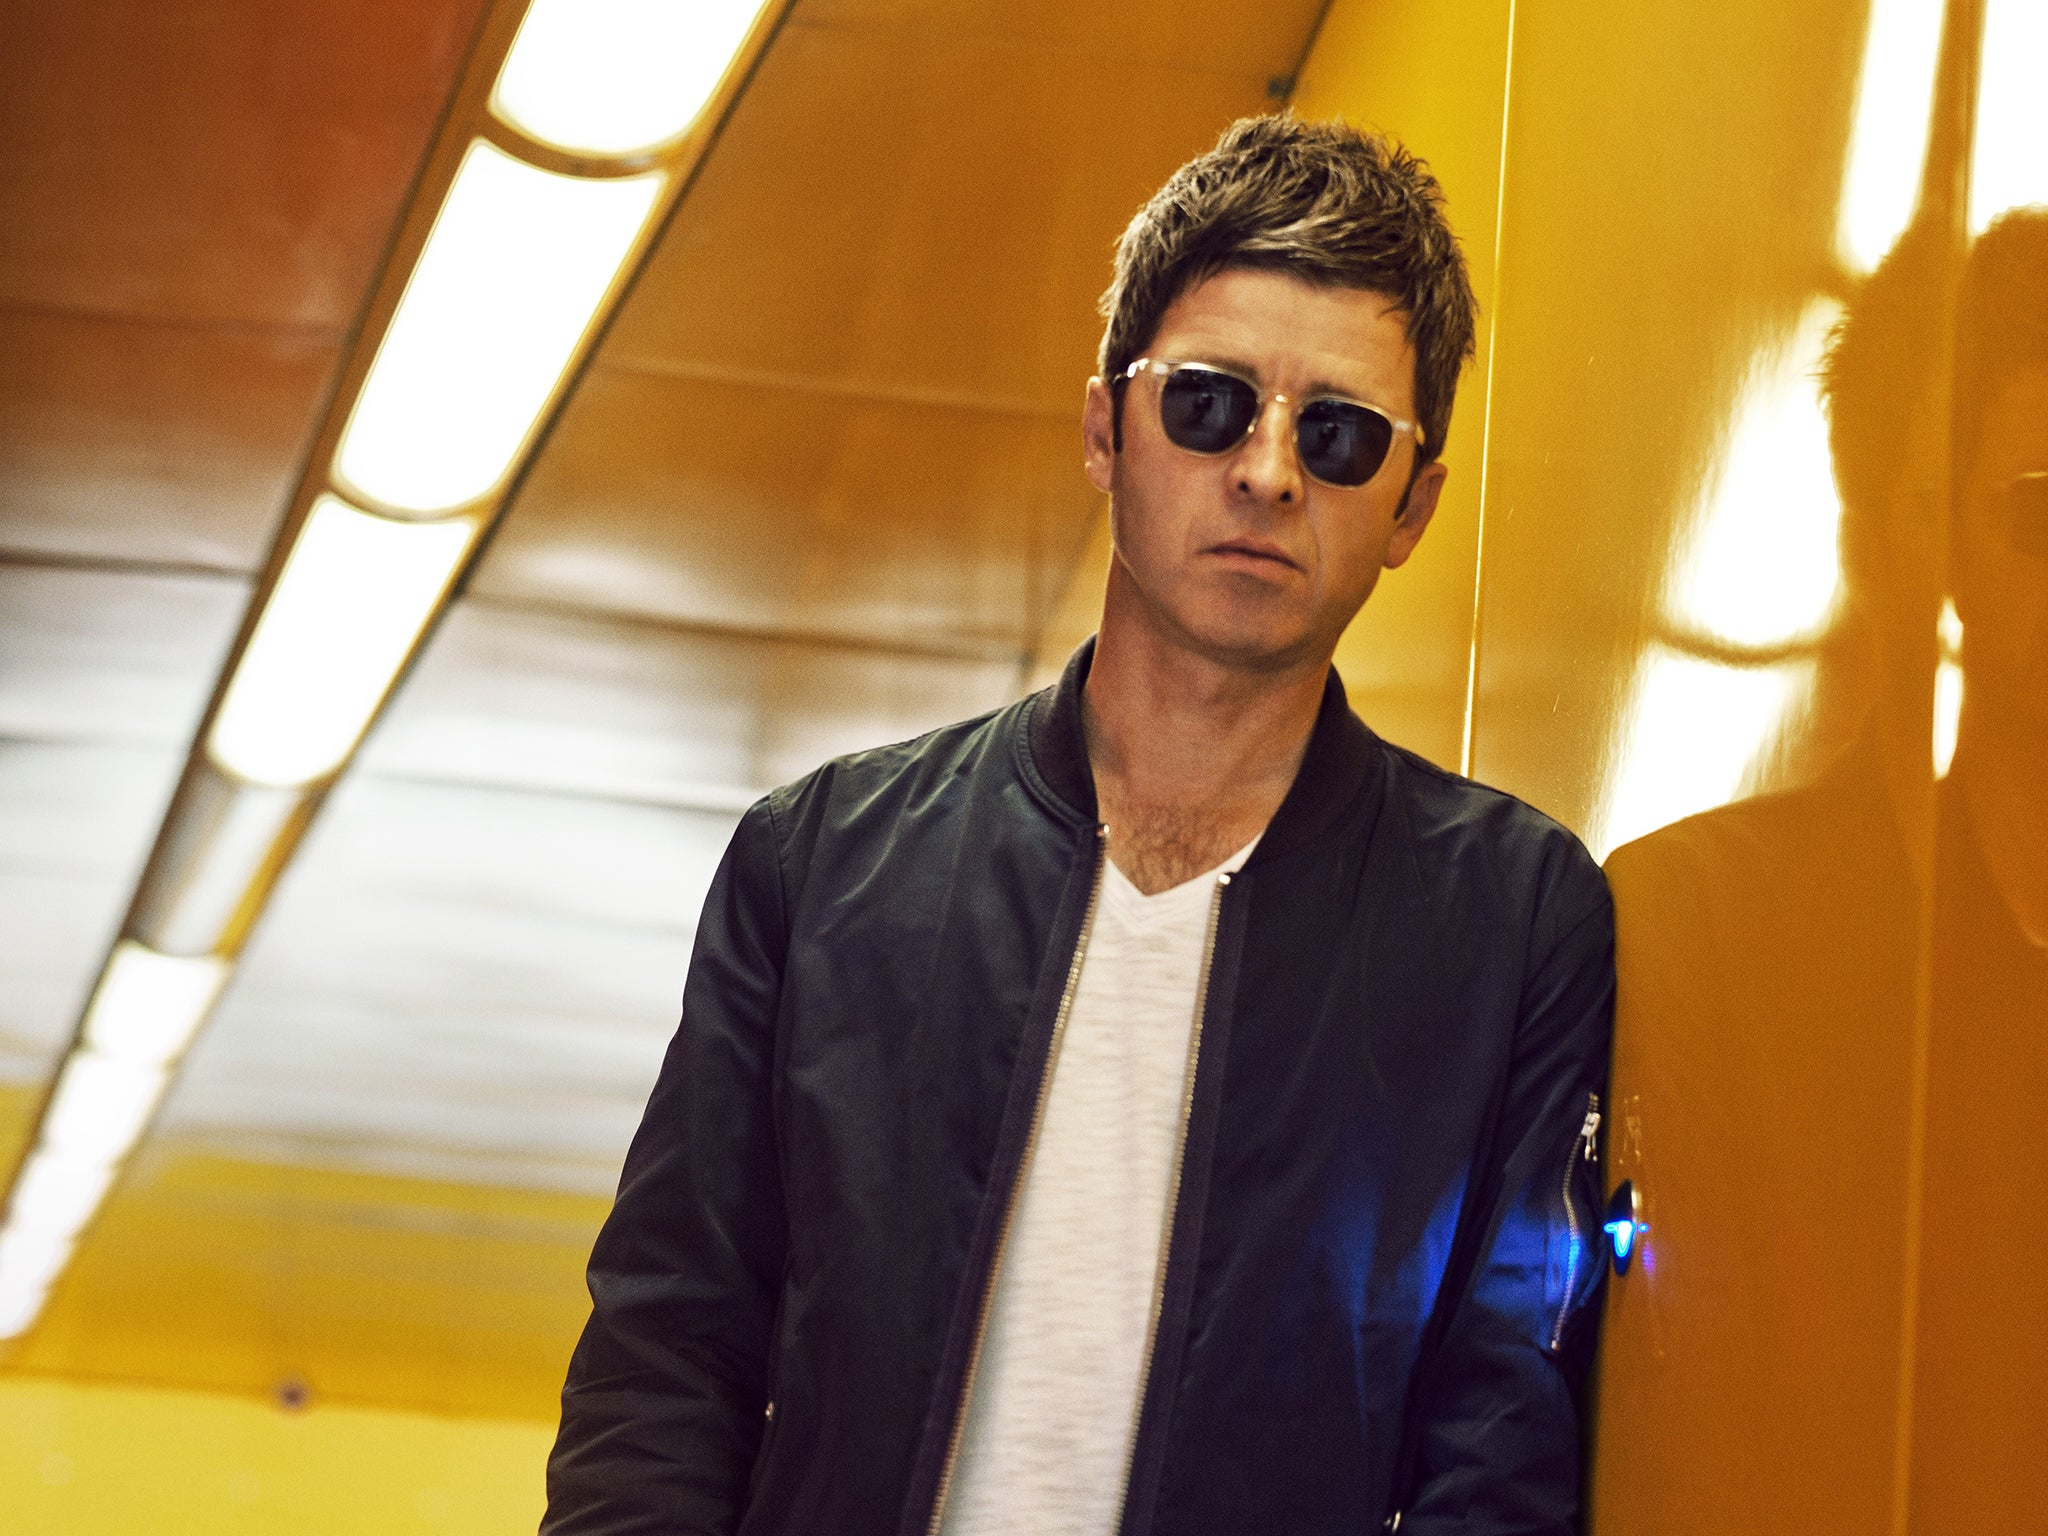 Noel Gallagher 'cannot wait' to hear Oasis-inspired One Direction album but rants about 'pointless' Tidal and Spotify